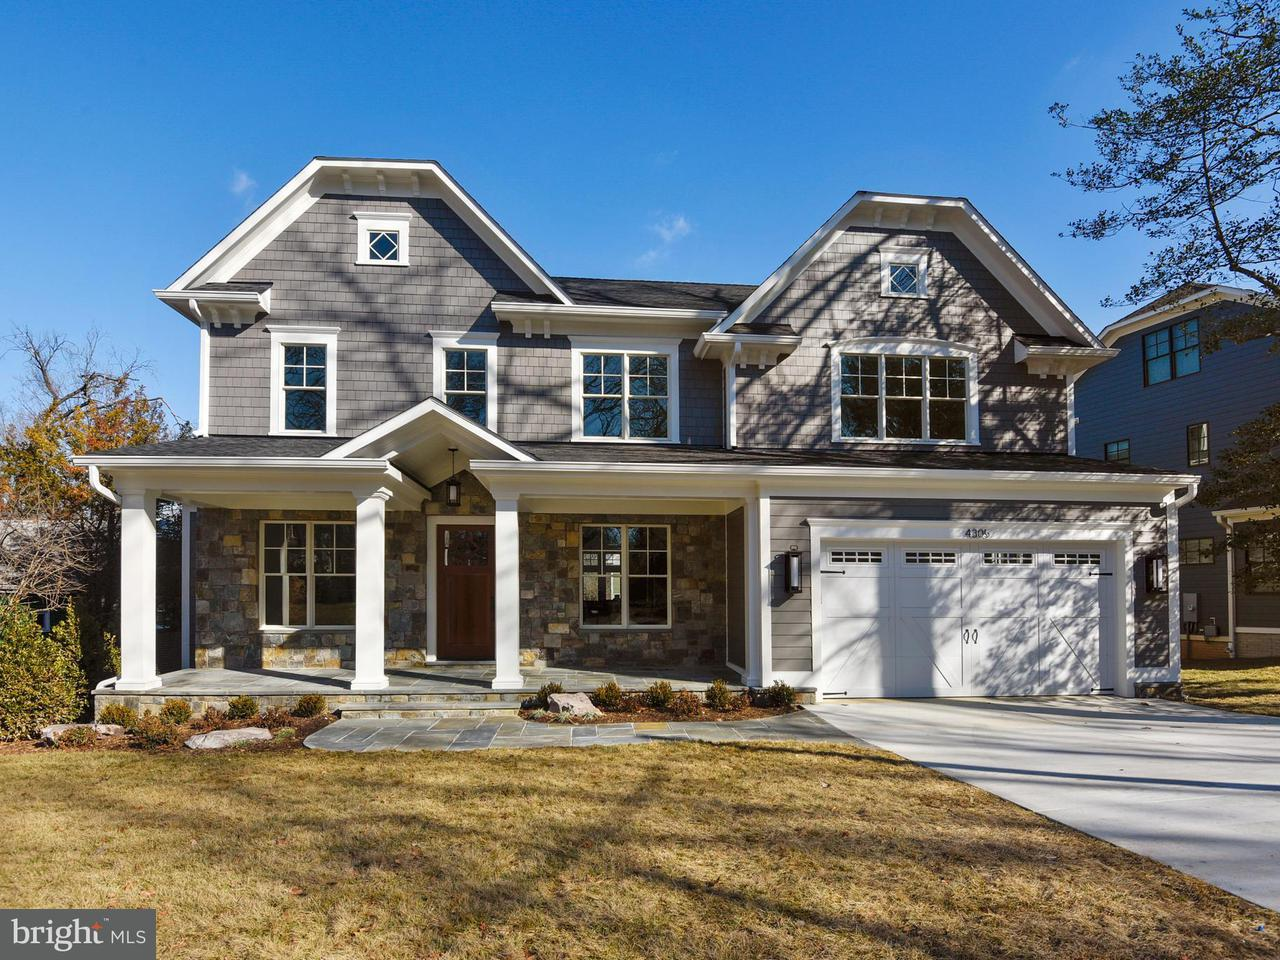 Single Family Home for Sale at 4305 Rosedale Avenue 4305 Rosedale Avenue Bethesda, Maryland 20814 United States